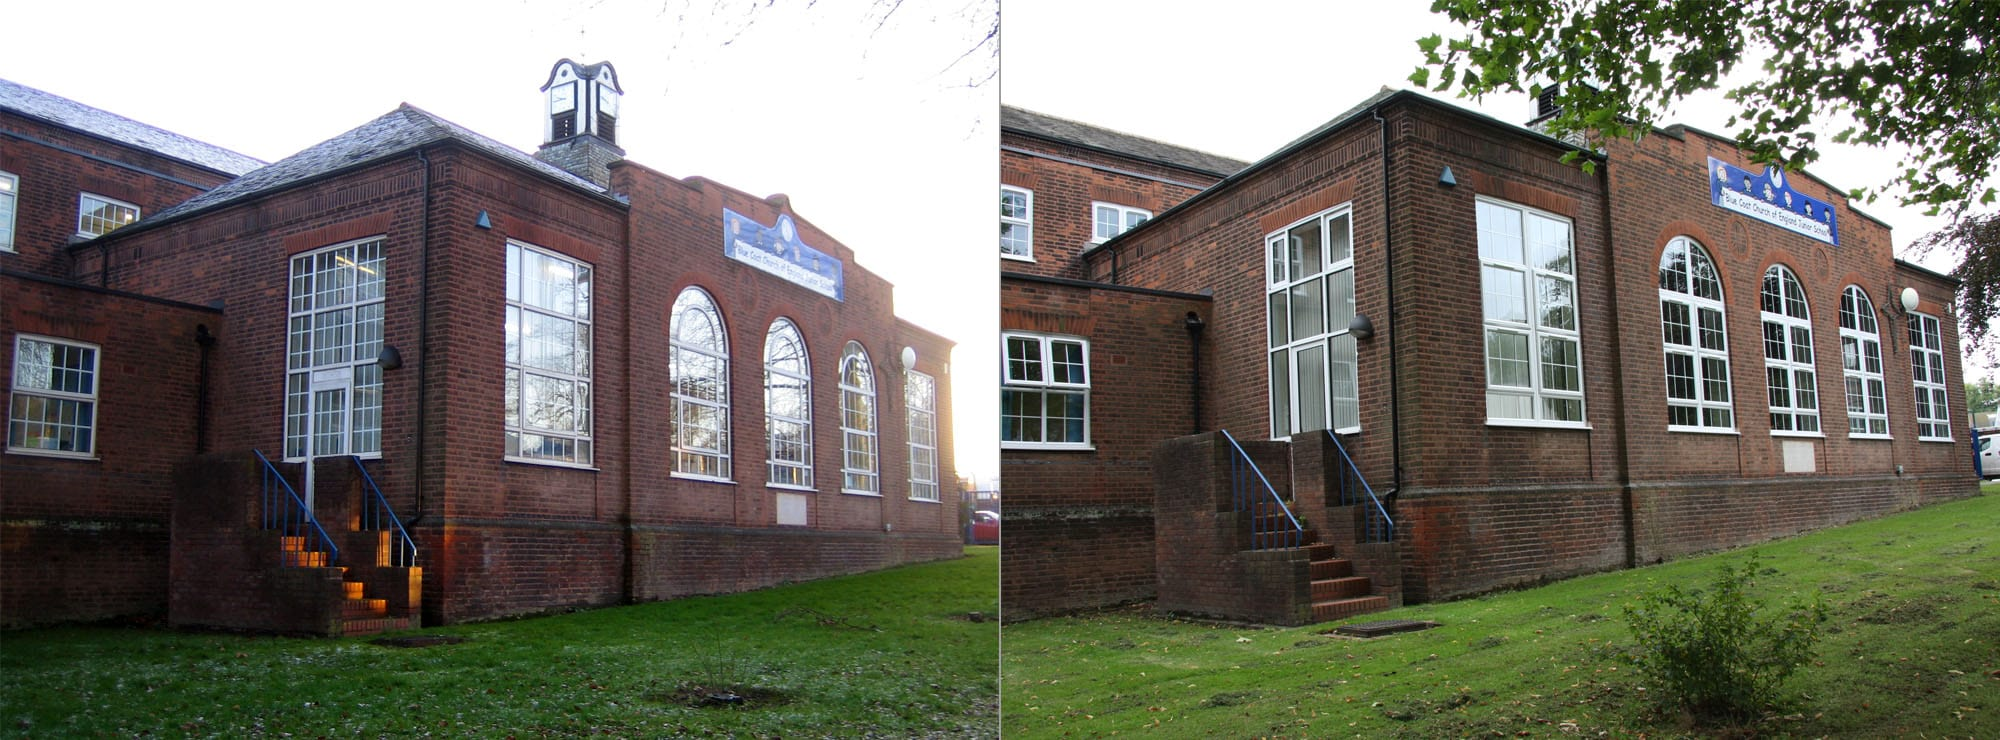 <strong>Junior School in West Midlands</strong>Replacement UPVC windows and aluminium doors to front elevation.